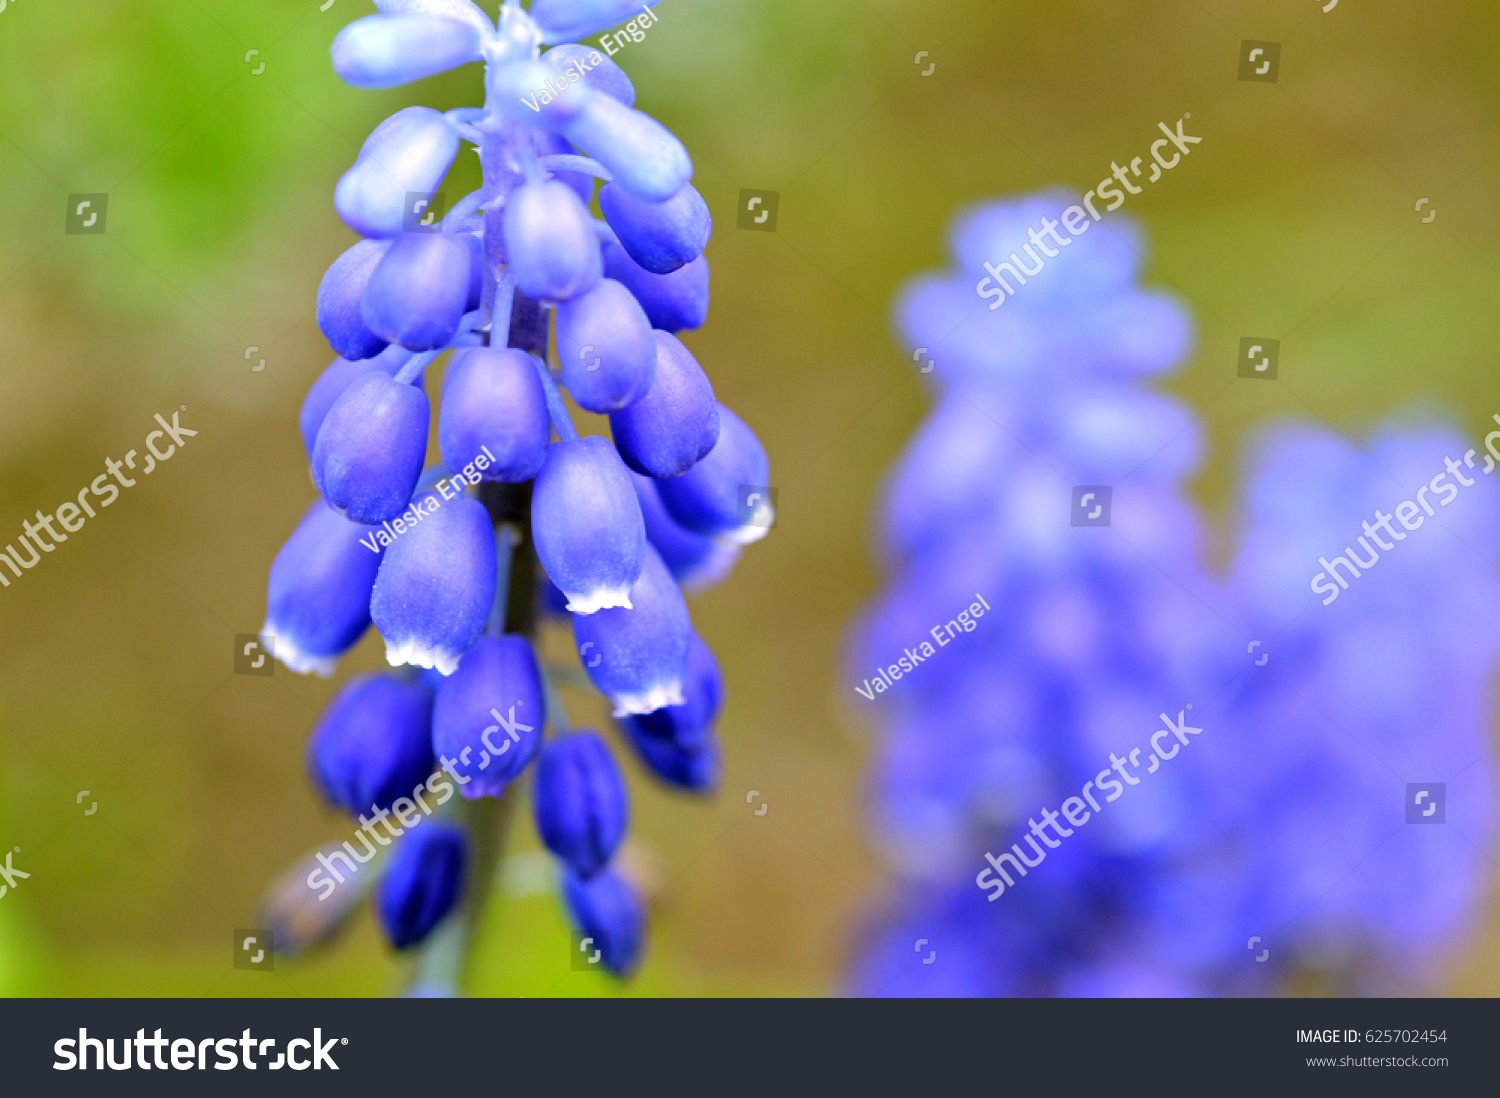 Closeup blue violet grape hyacinth flower stock photo edit now closeup of a blue or violet grape hyacinth flower in spring on a nature green background izmirmasajfo